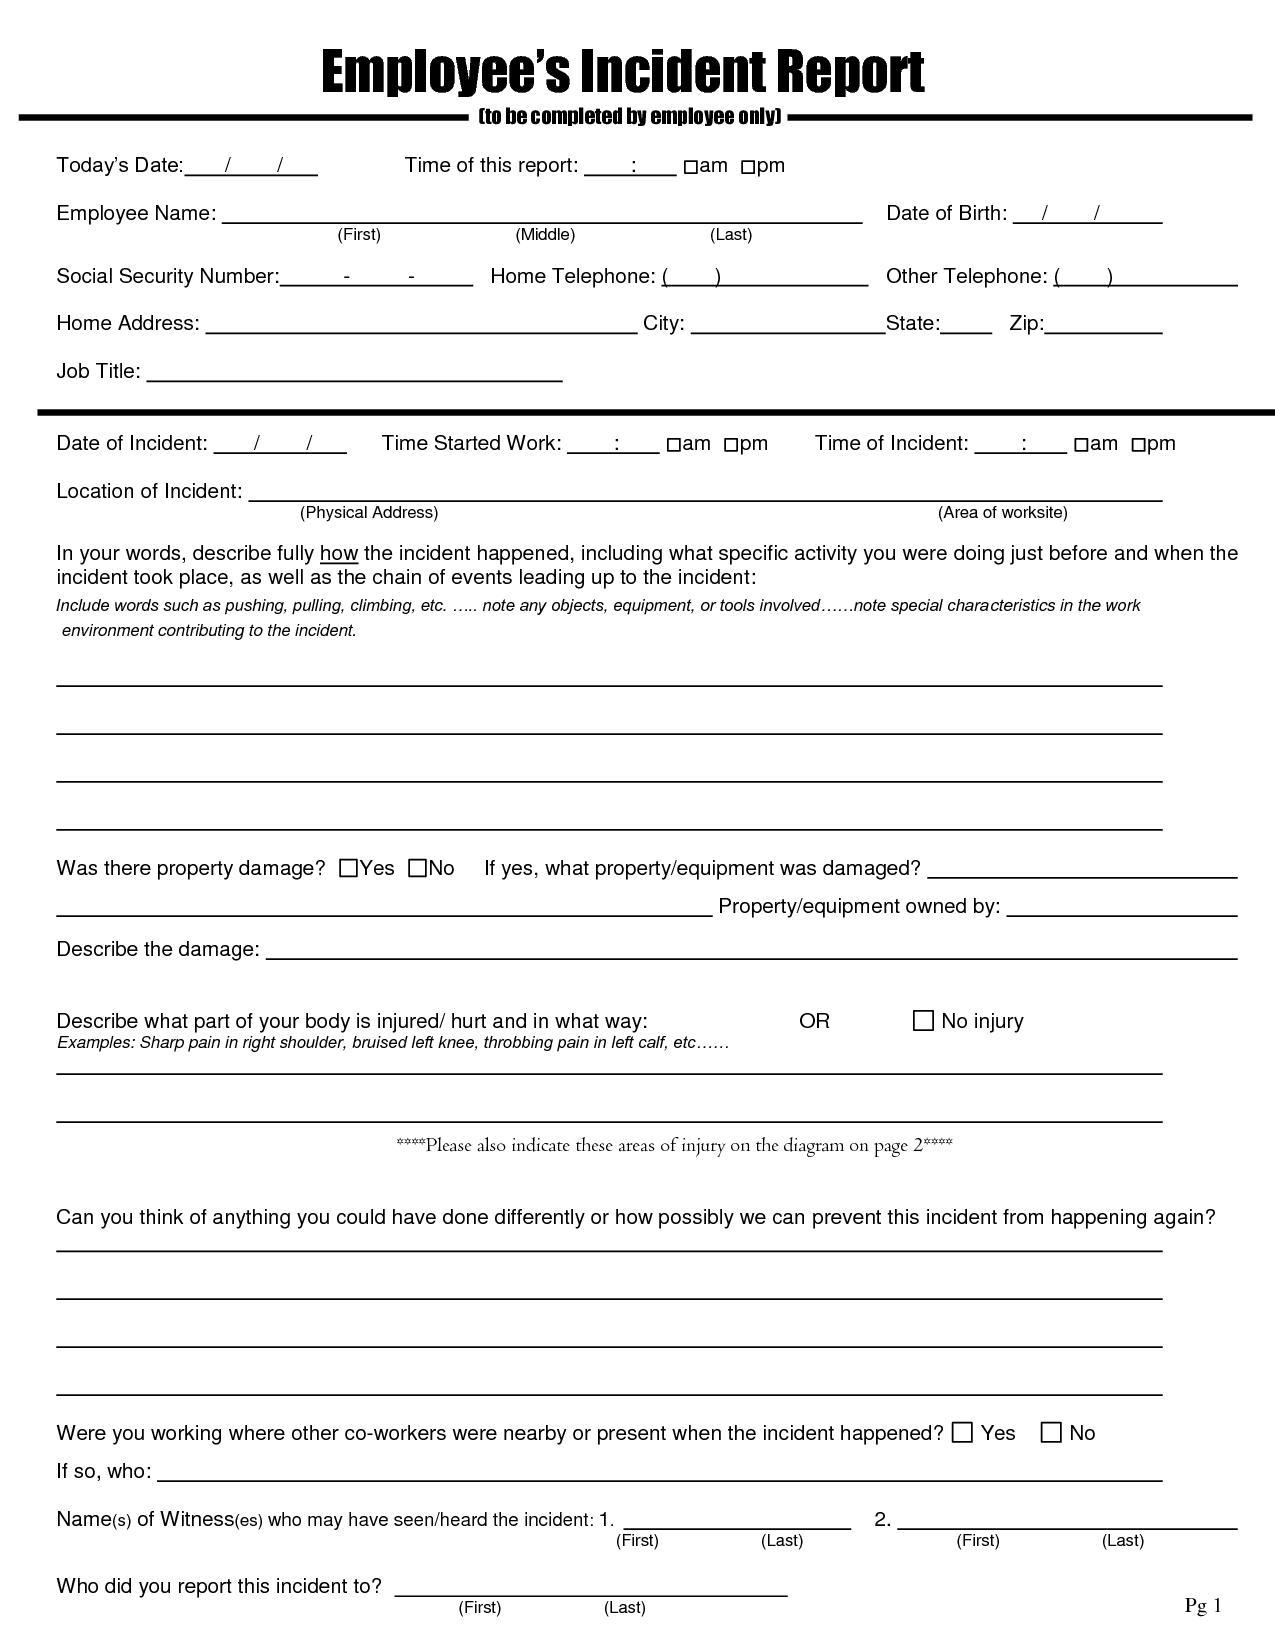 sample employee incident report form   Boat.jeremyeaton.co